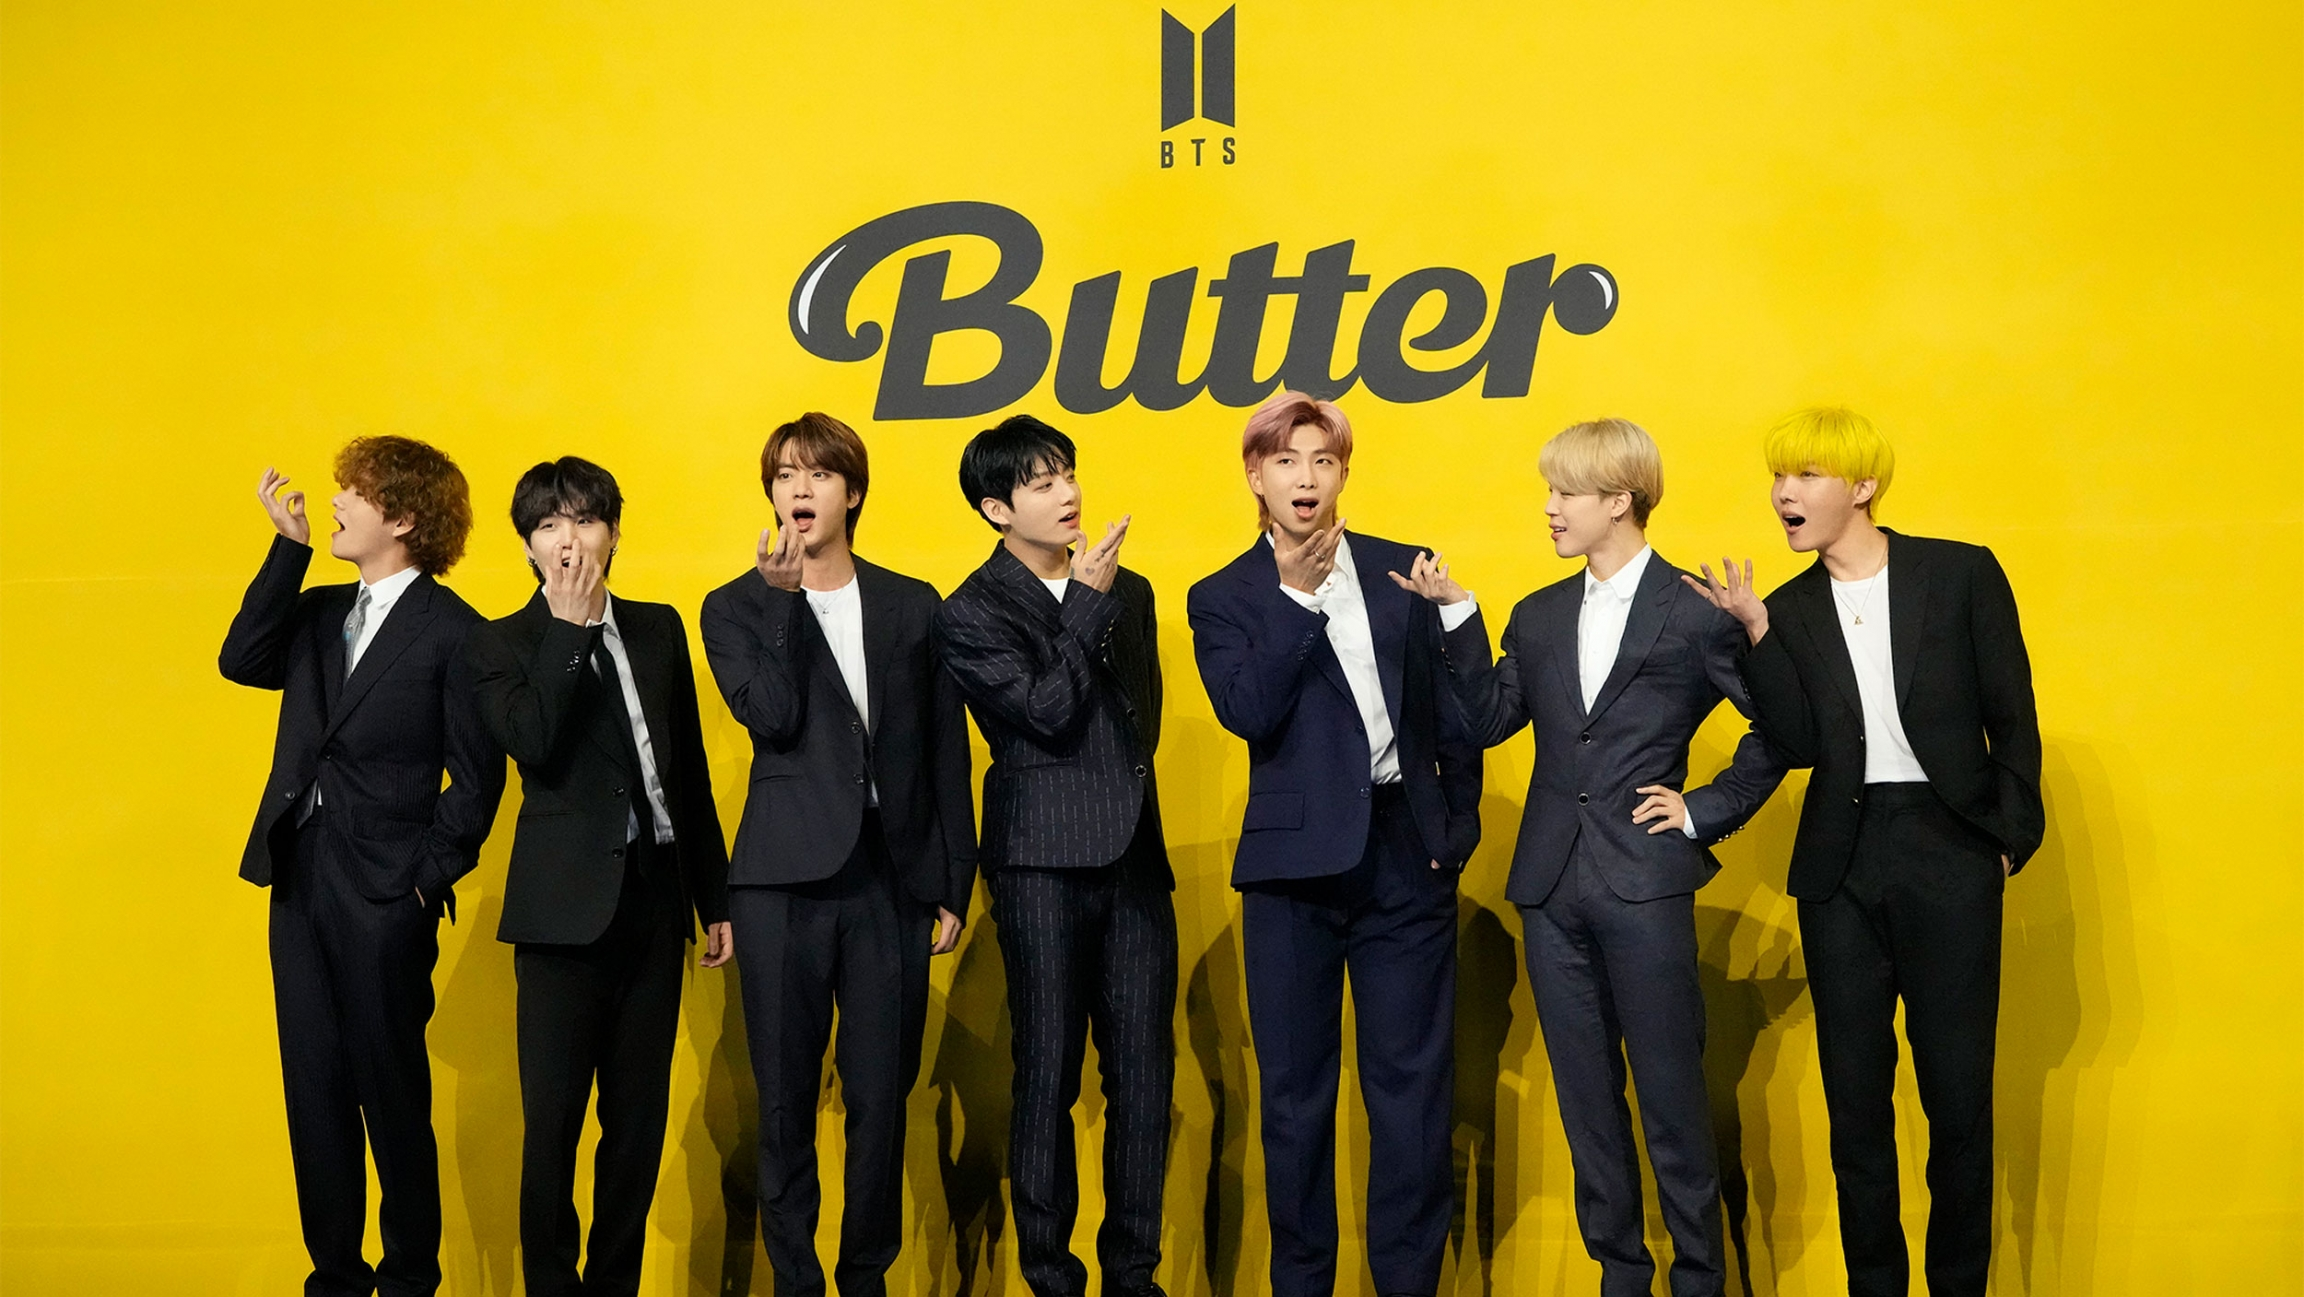 """Seven members of K-pop band BTS stand wearing black suits in front of a yellow background that says """"BTS Butter"""""""